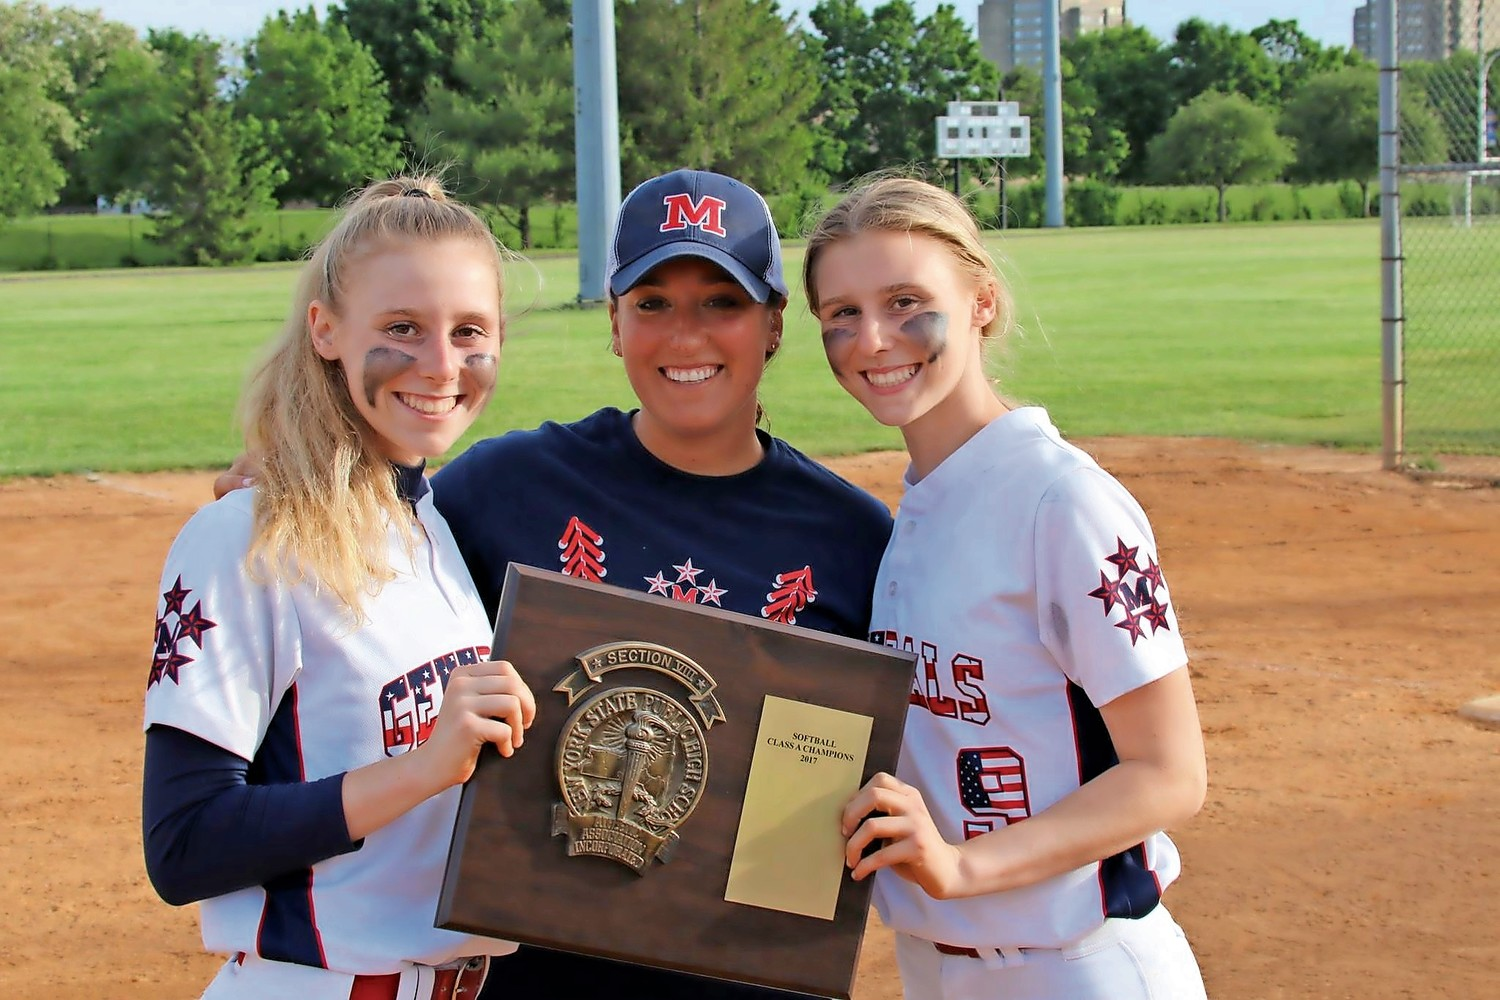 Ashley Budrewicz, left, her sister, Jessica, right, and MacArthur High School assistant softball coach Deana Tororici, center, celebrated their win in the Nassau County Softball Division A Championship series last May.